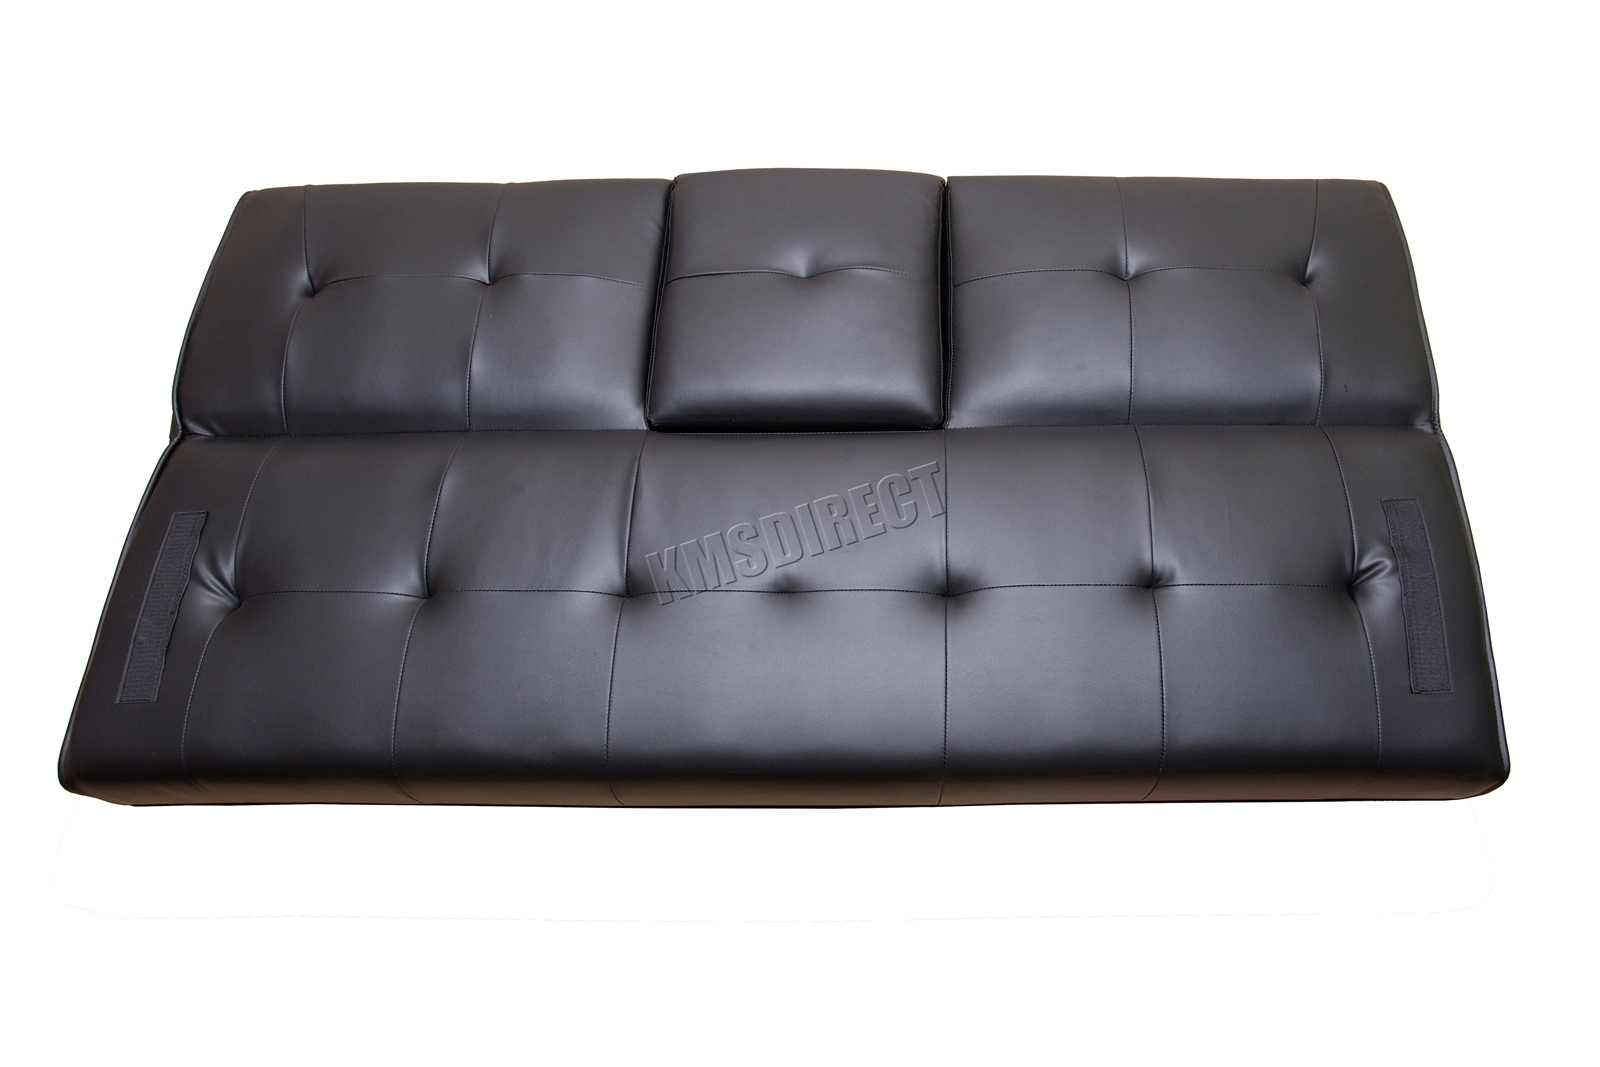 WestWood-Faux-Leather-Manhattan-Sofa-Bed-recliner-3-Seater-Modern-Luxury-Design thumbnail 18